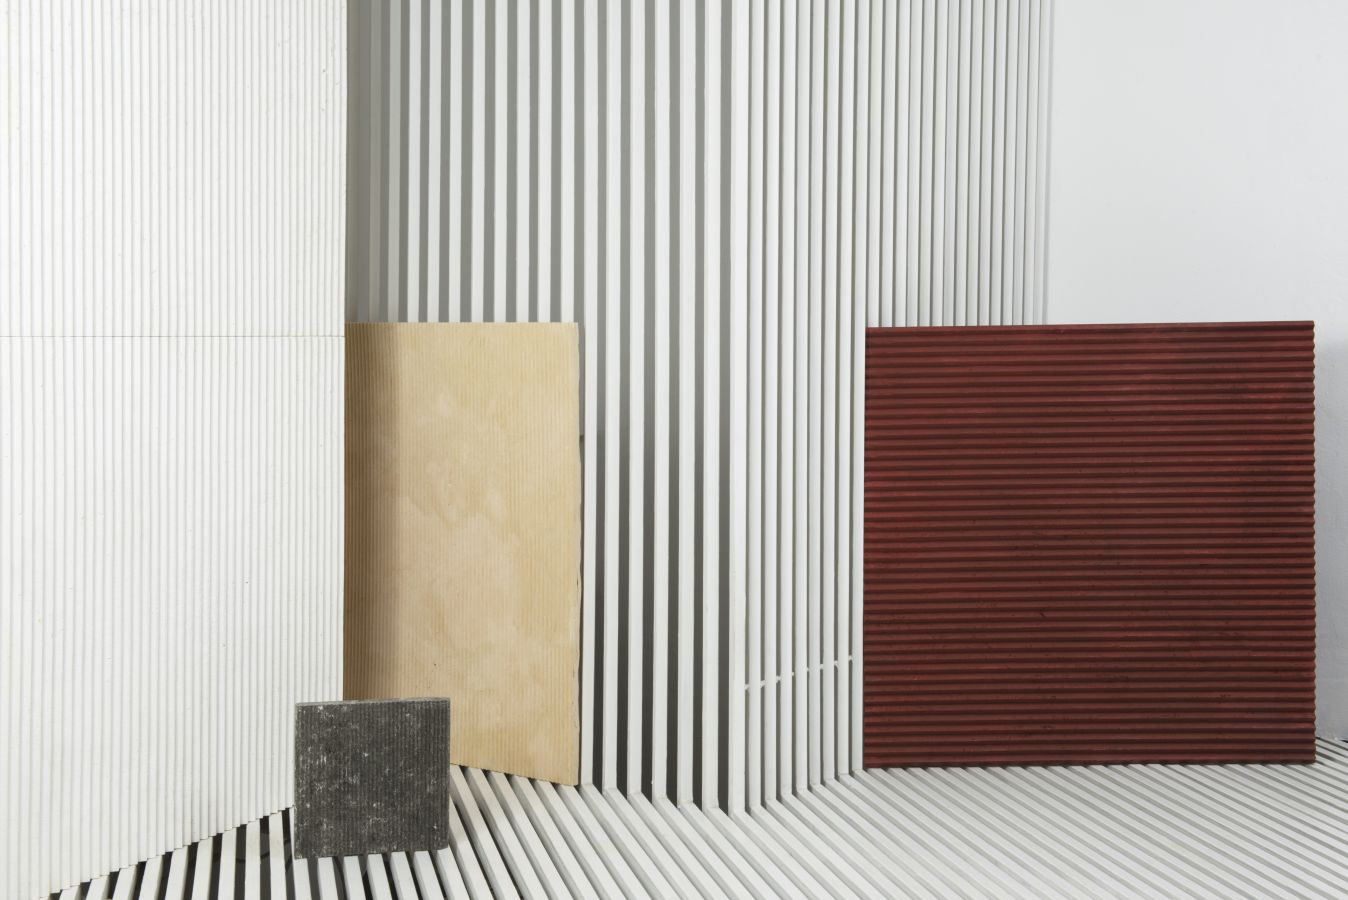 """White Medium Ruts - Obtained by stretching the impasto first by hand and then with CNC machining, Ruts alternates between flat portions, reminiscent of stone, to rectangular sections to create a succession with a solid and fortunate rhythm. The """"cadence"""" of its grooves can be more or less dense, continuous or interrupted, but in each of its versions and in all the different colors, Ruts reveals, thanks to the intervention of the machine, the material uniqueness of paper pulp. They are indeed hard, mechanized cuts that speak of the very fiber of the paper as it pushes toward new dynamic and formal borders. 